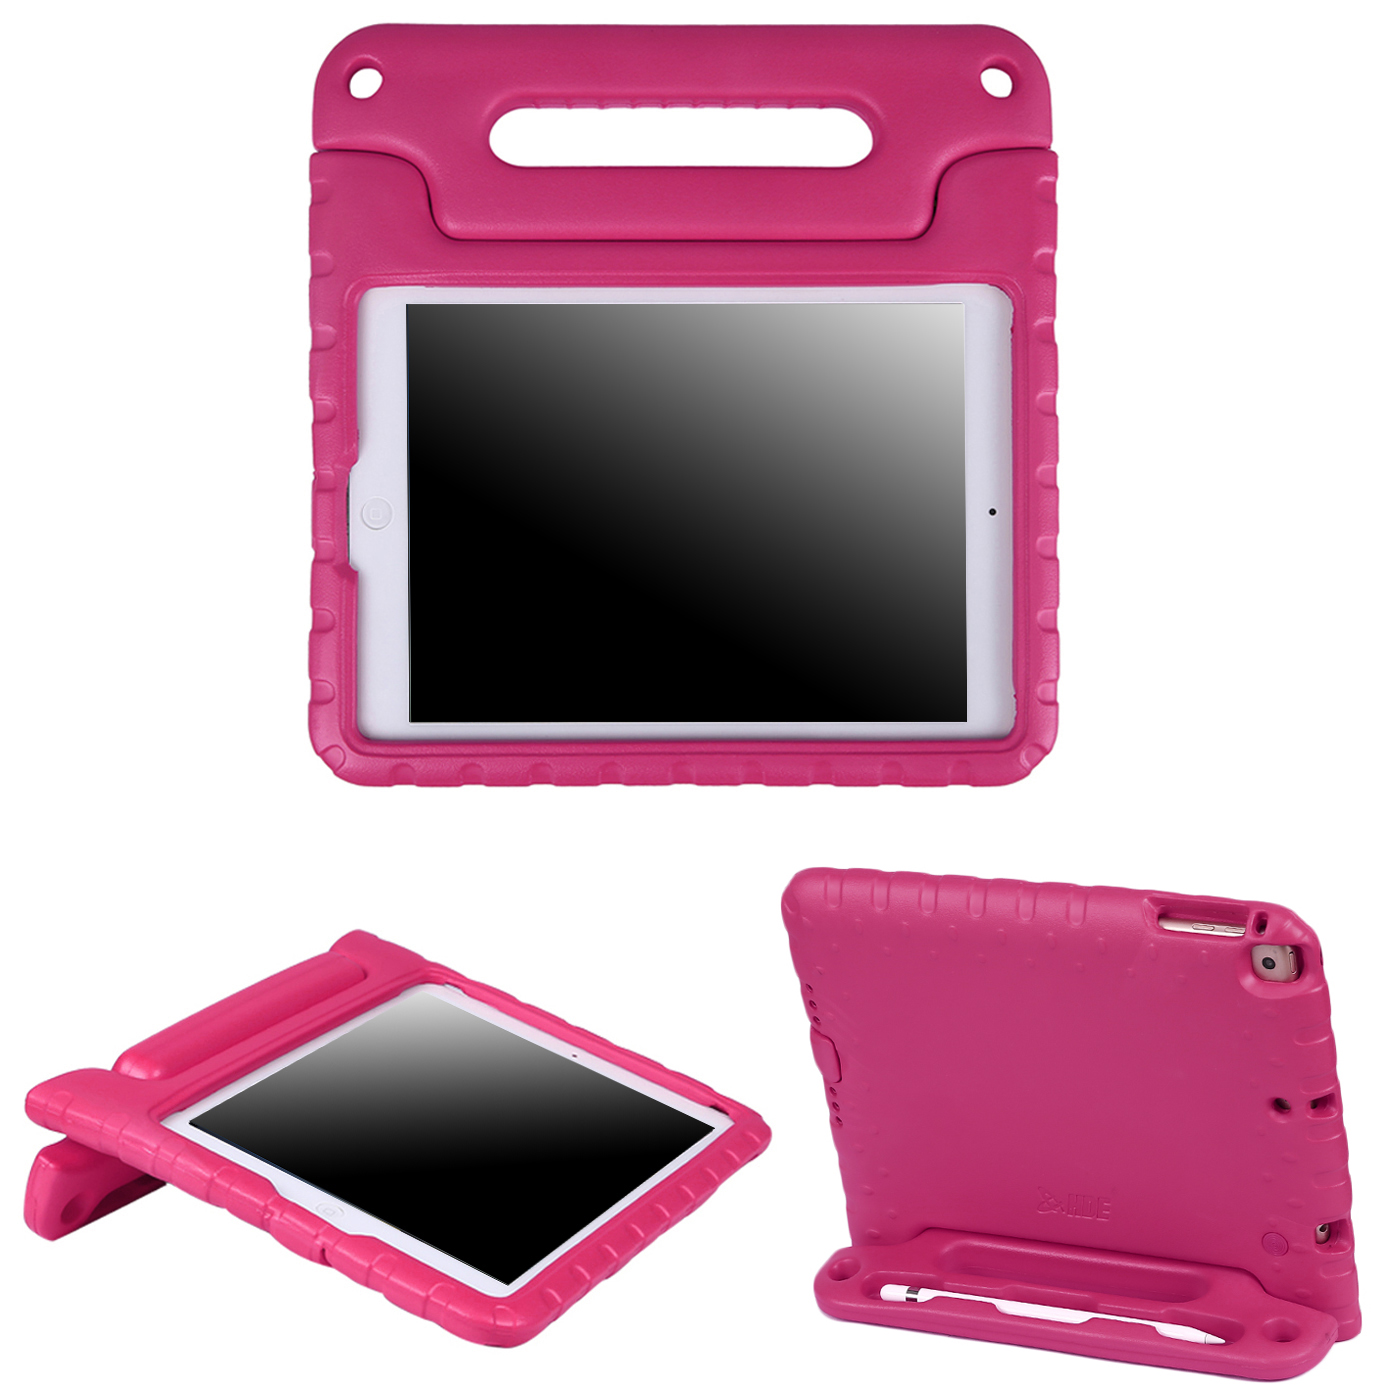 HDE iPad 9.7 Case for kids 2018 6th Generation Shockproof Bumper Protective Cover Stand for All New Apple iPad 9.7 Inch - Hot Pink